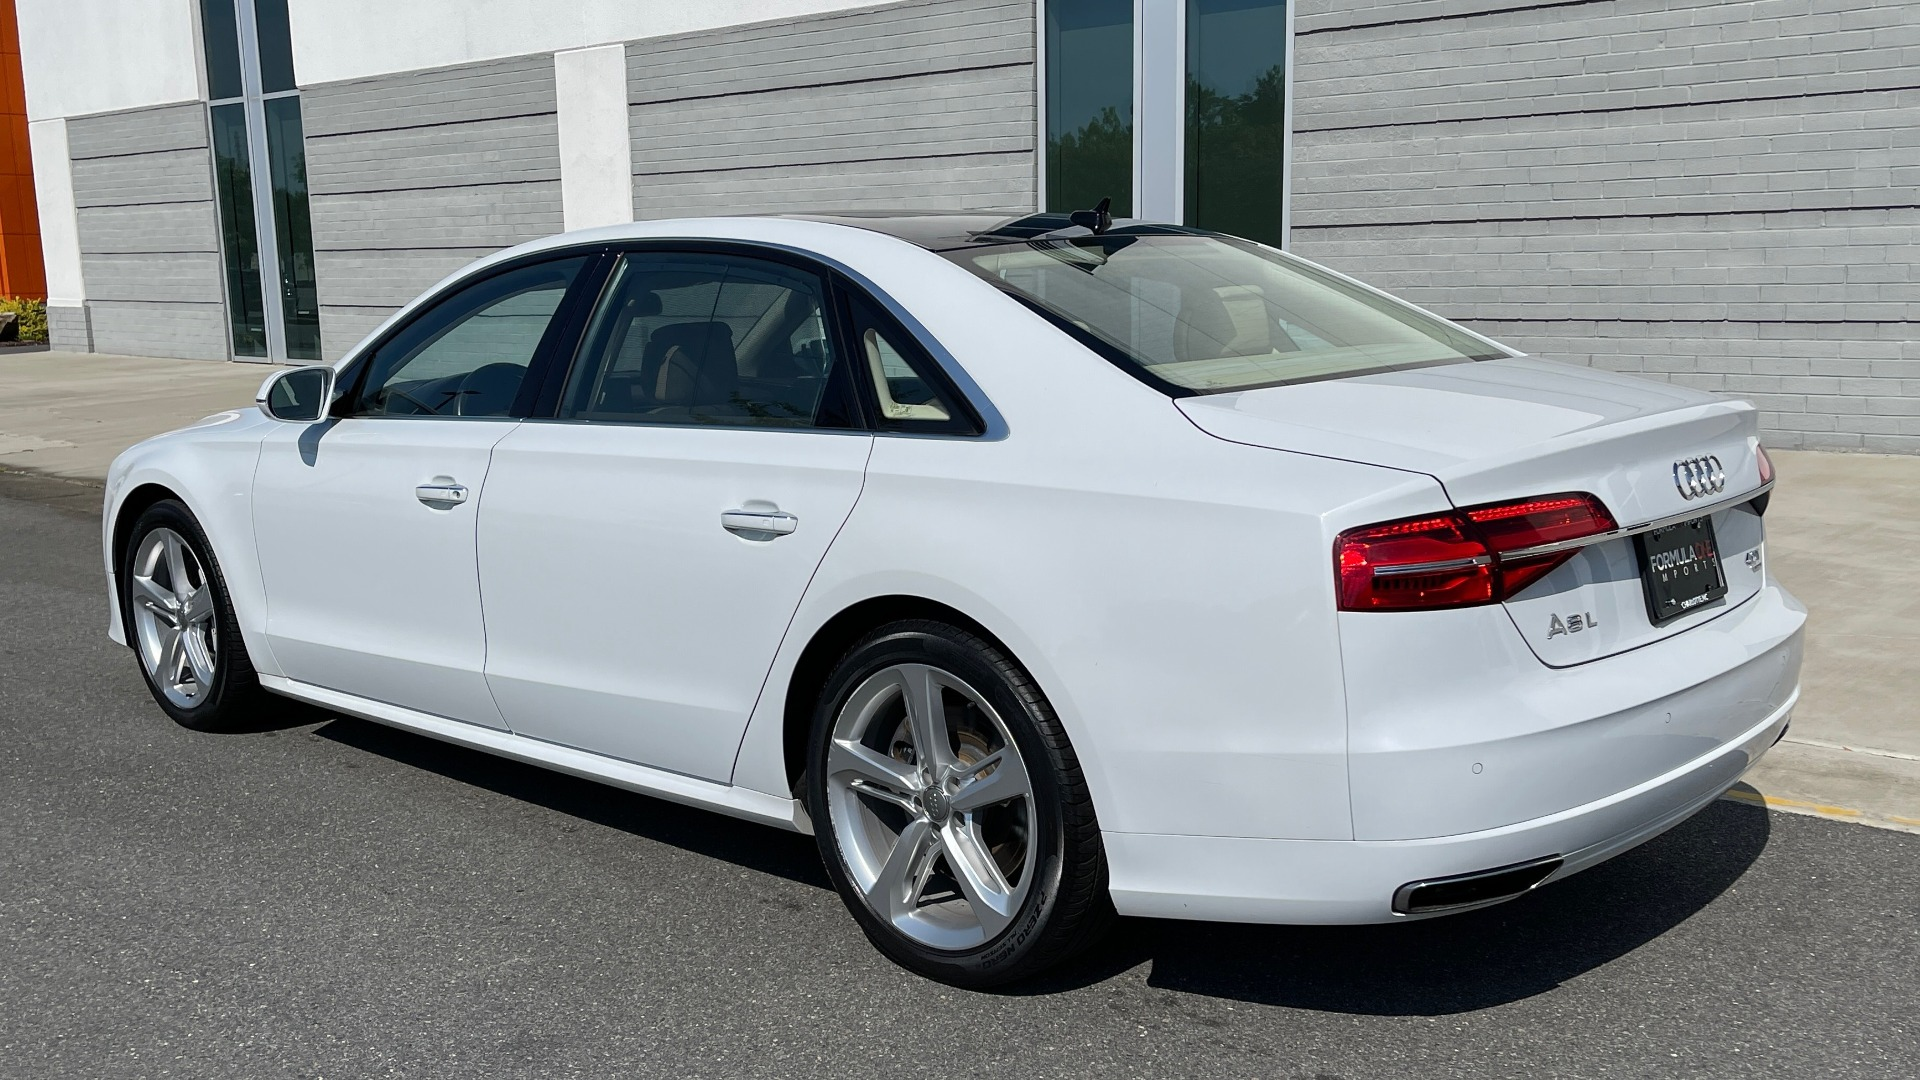 Used 2018 Audi A8 L SPORT 4.0T / EXECUTIVE PKG / NAV / BOSE / SUNROOF / REARVIEW for sale Sold at Formula Imports in Charlotte NC 28227 4